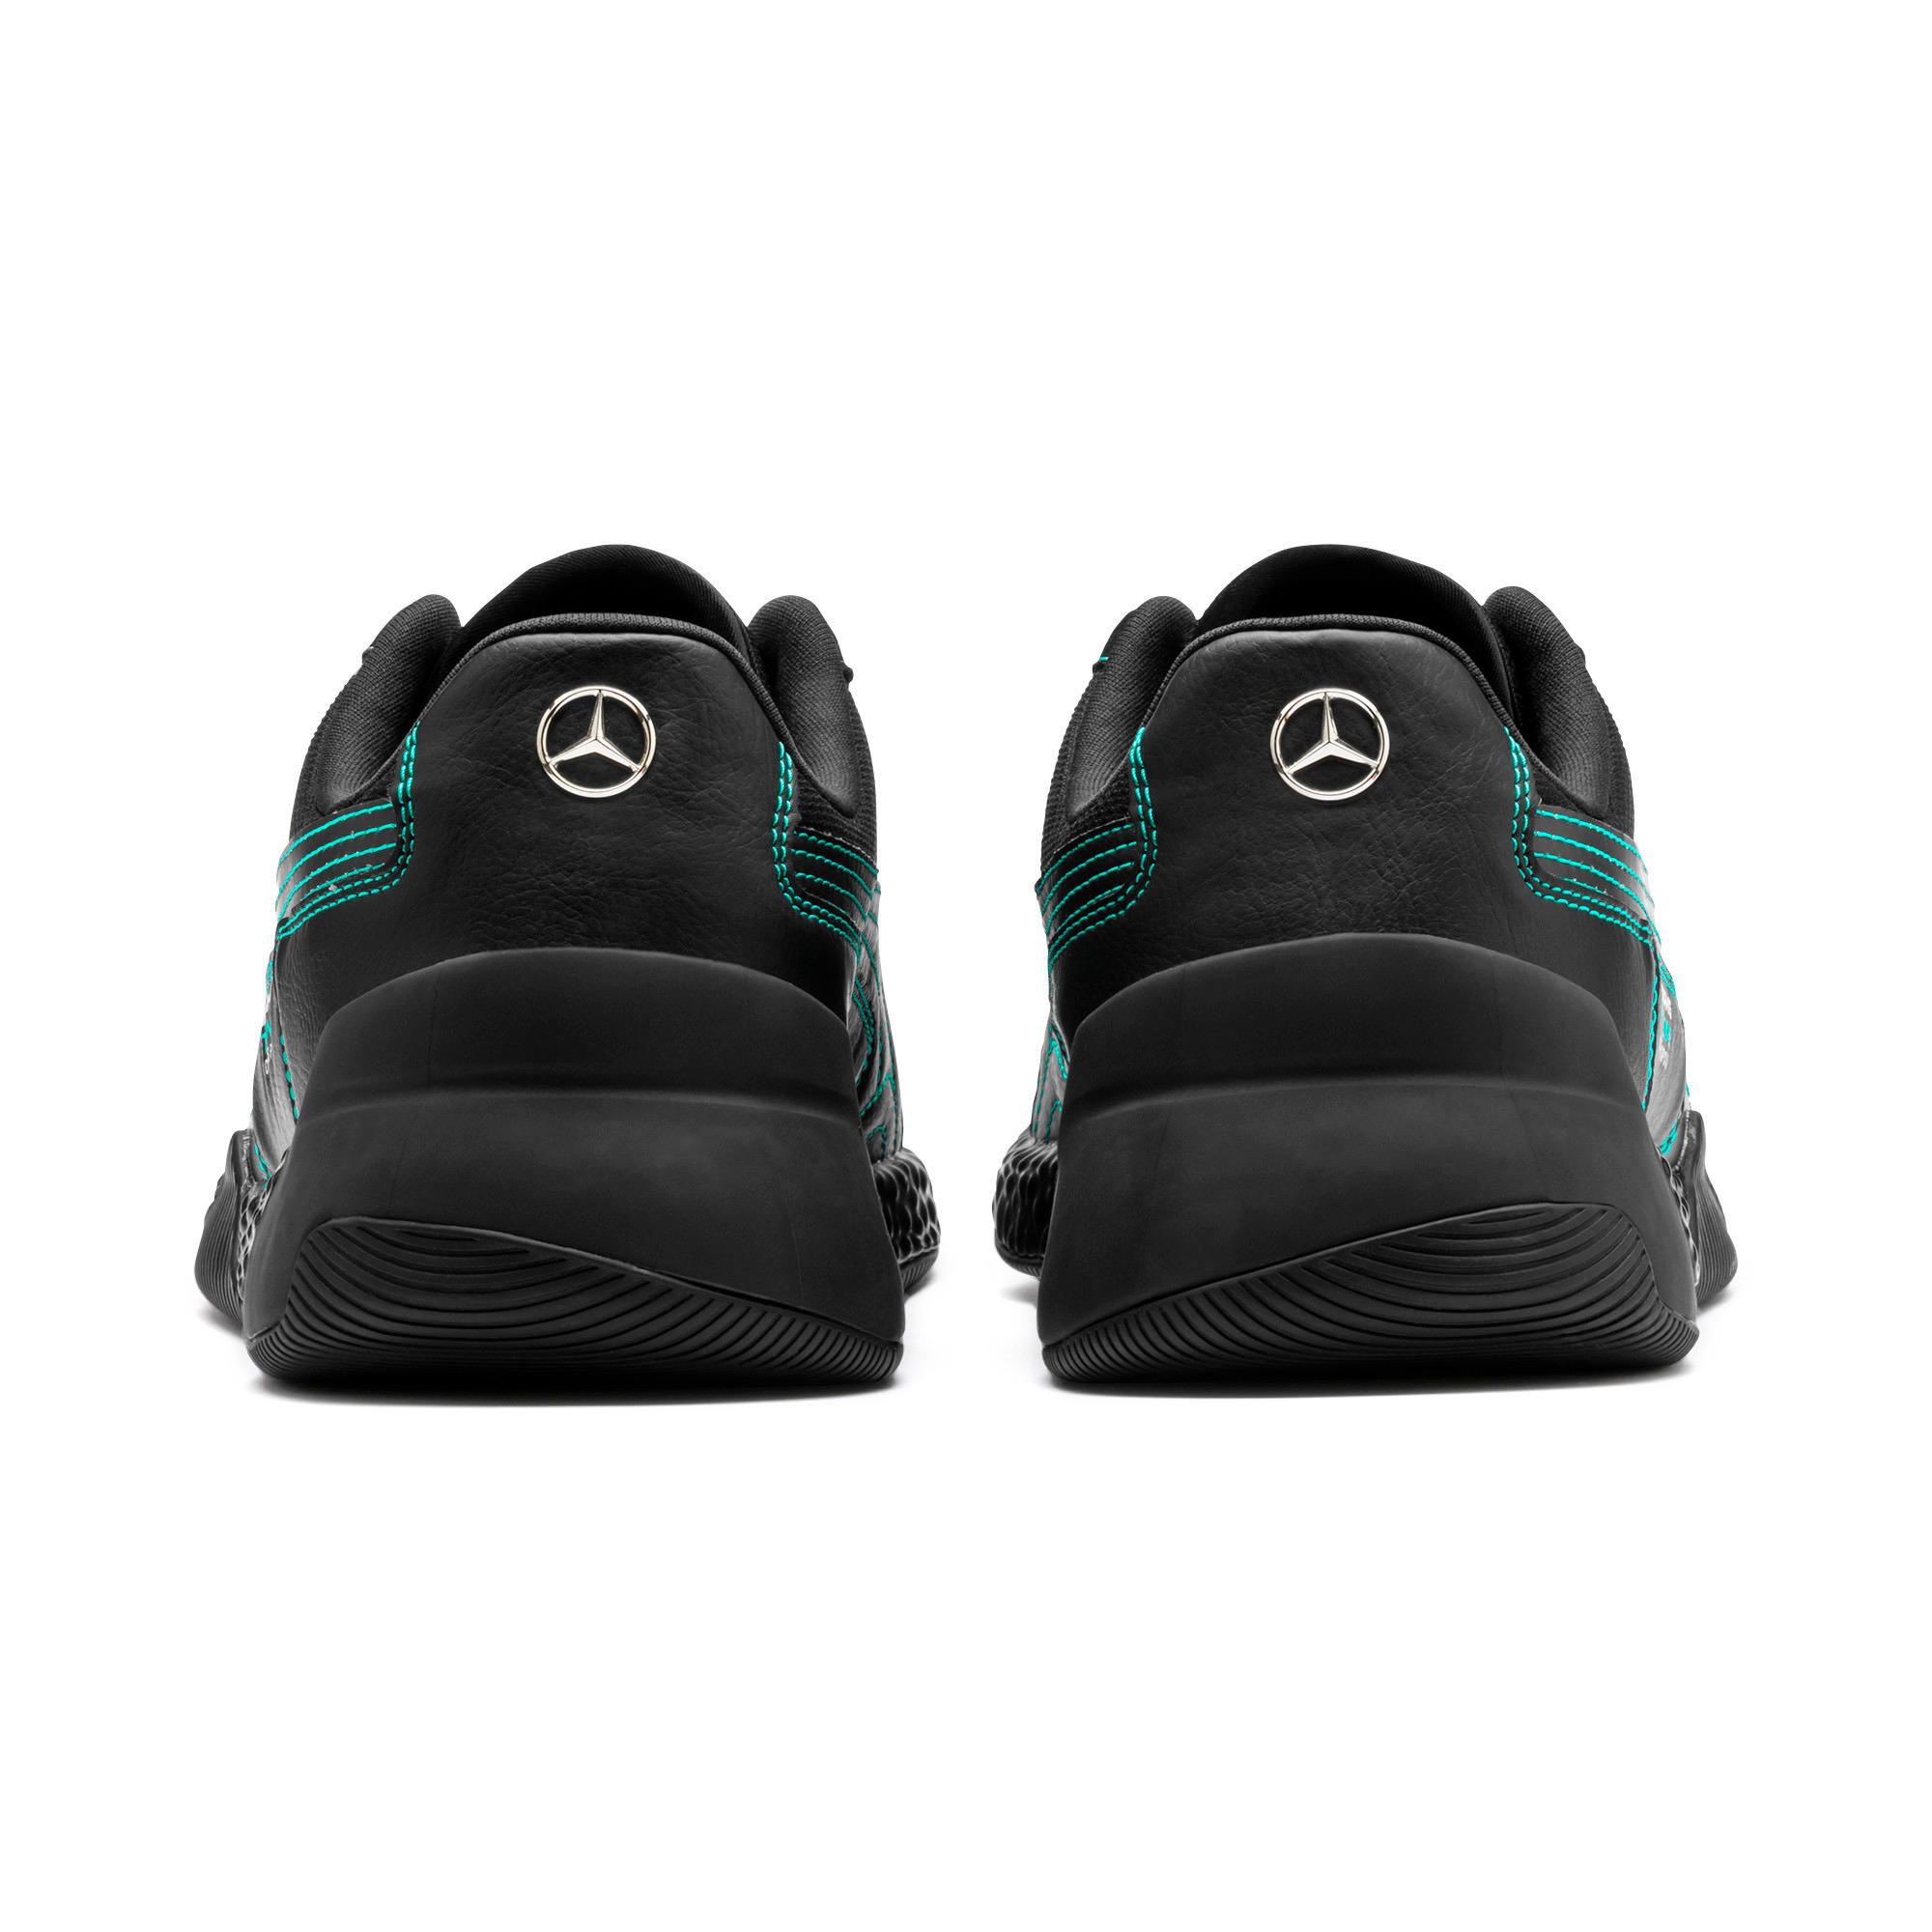 Thumbnail 4 of Mercedes AMG Petronas Speed HYBRID Running Shoes, Puma Black-Spectra Green, medium